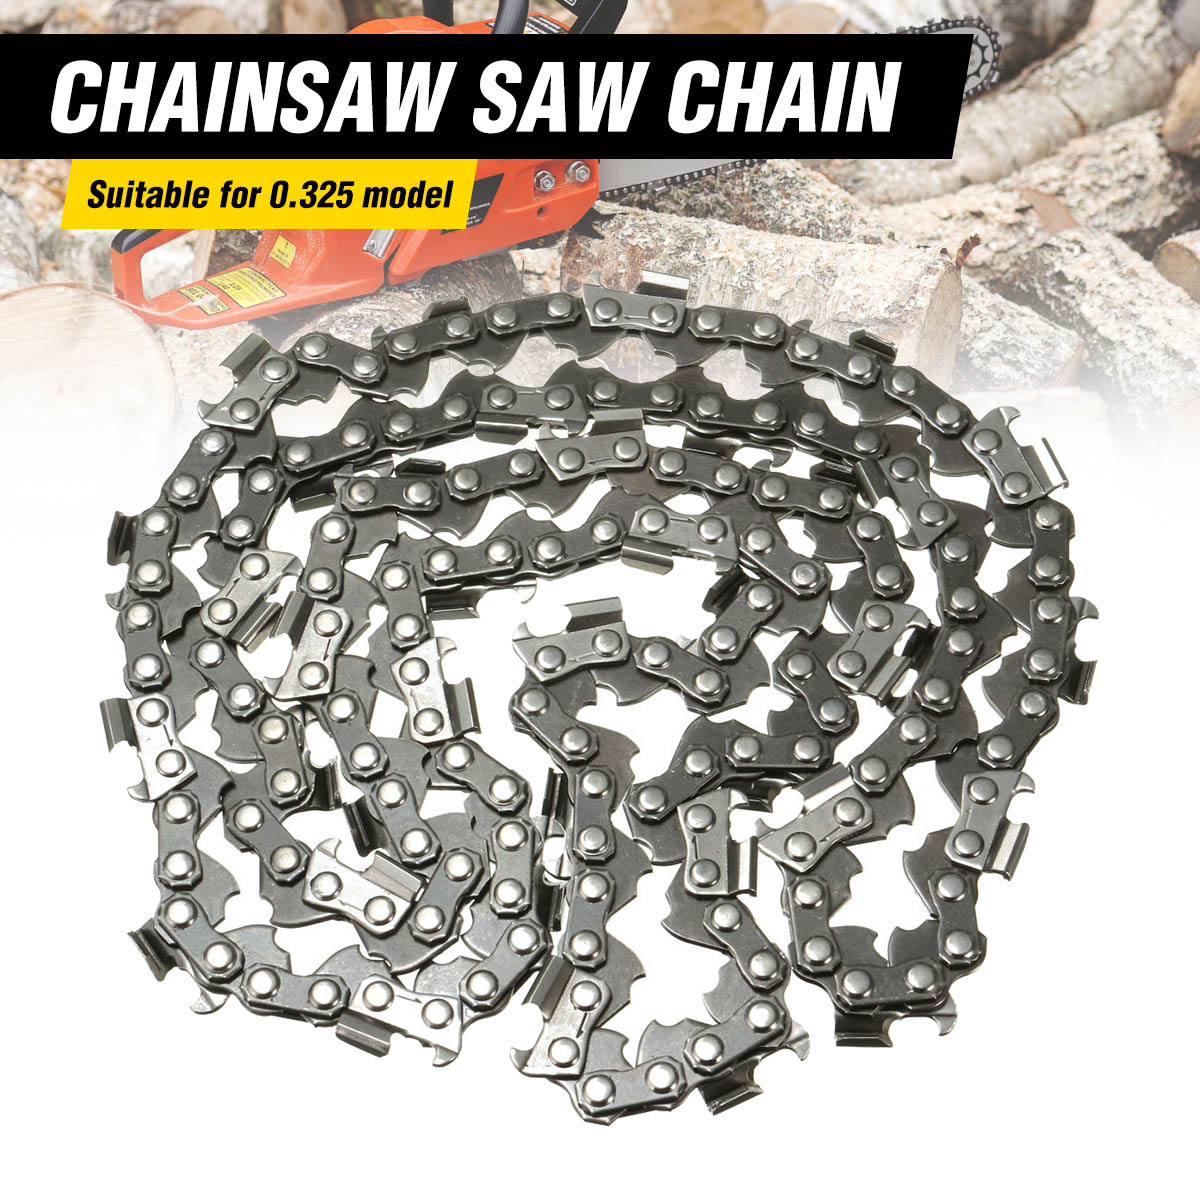 20 76 Links Replacement Chainsaw Saw Mill Ripping Chain For Timberpro 62CC  for 0.325 Model Surface Smooth for Cutting Lumber20 76 Links Replacement Chainsaw Saw Mill Ripping Chain For Timberpro 62CC  for 0.325 Model Surface Smooth for Cutting Lumber